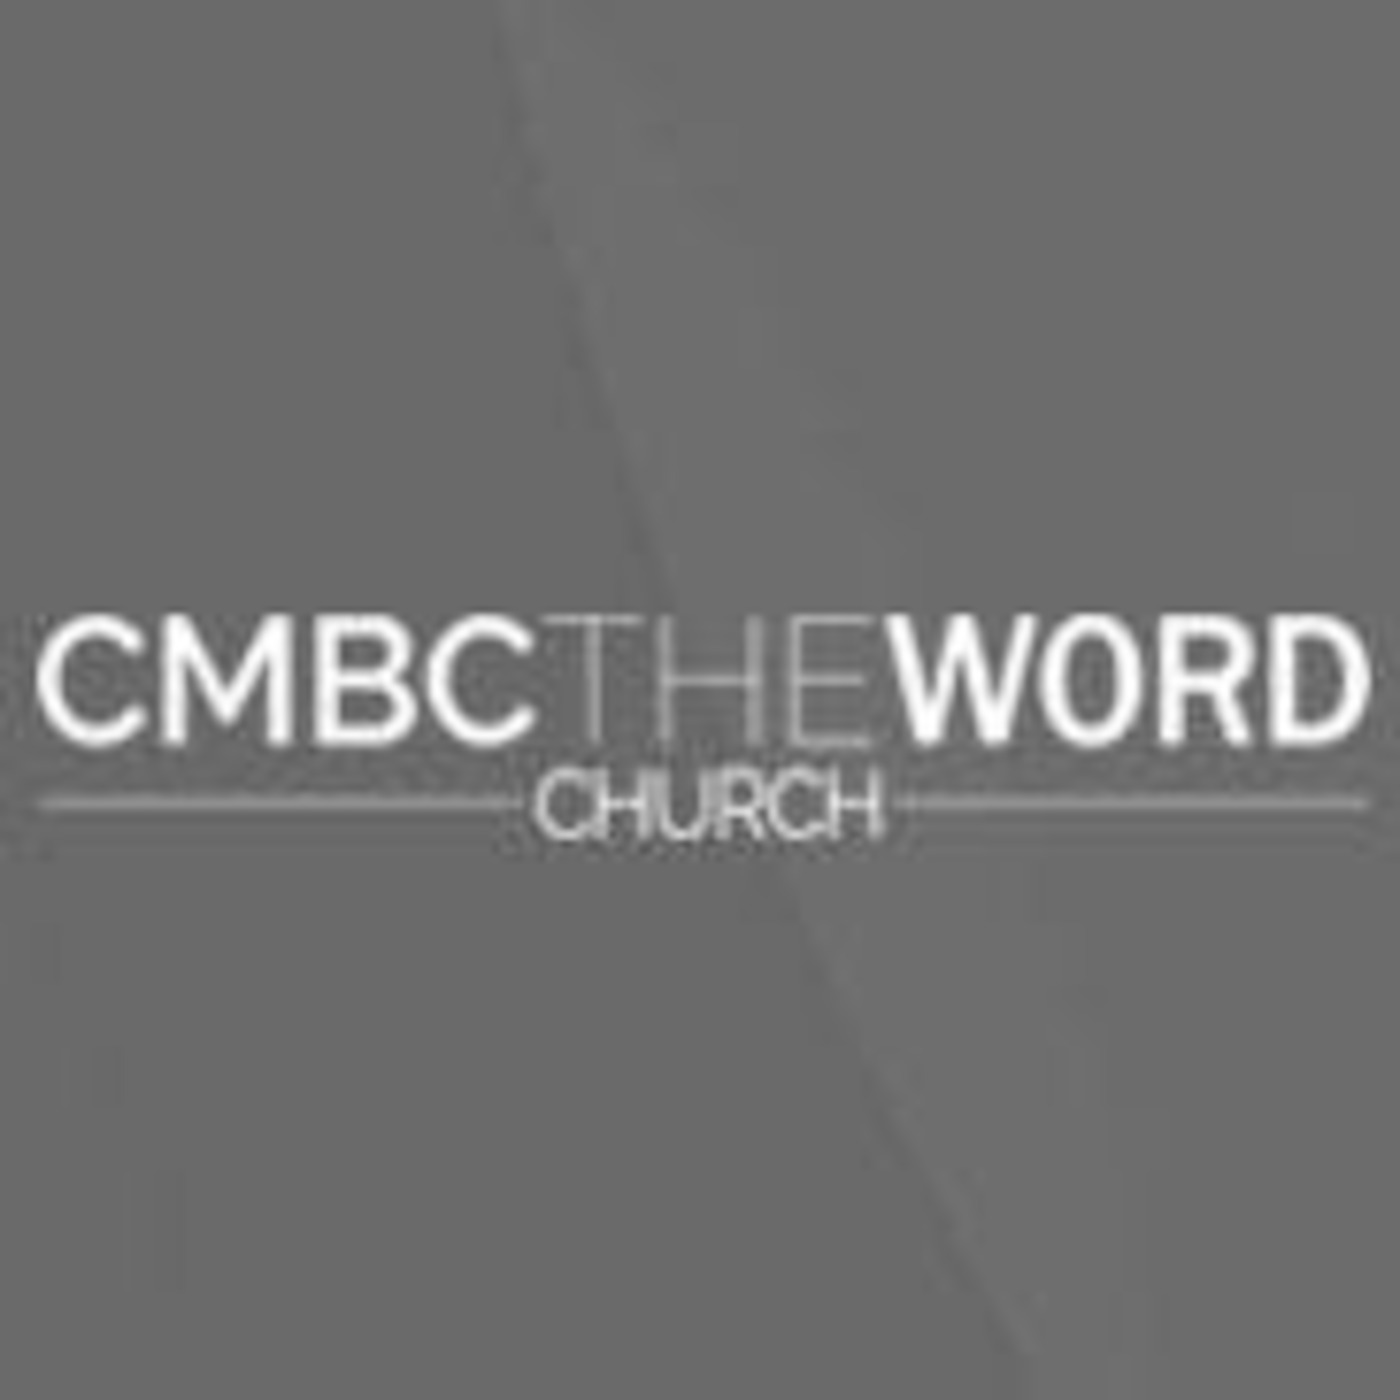 CMBC THE WORD CHURCH